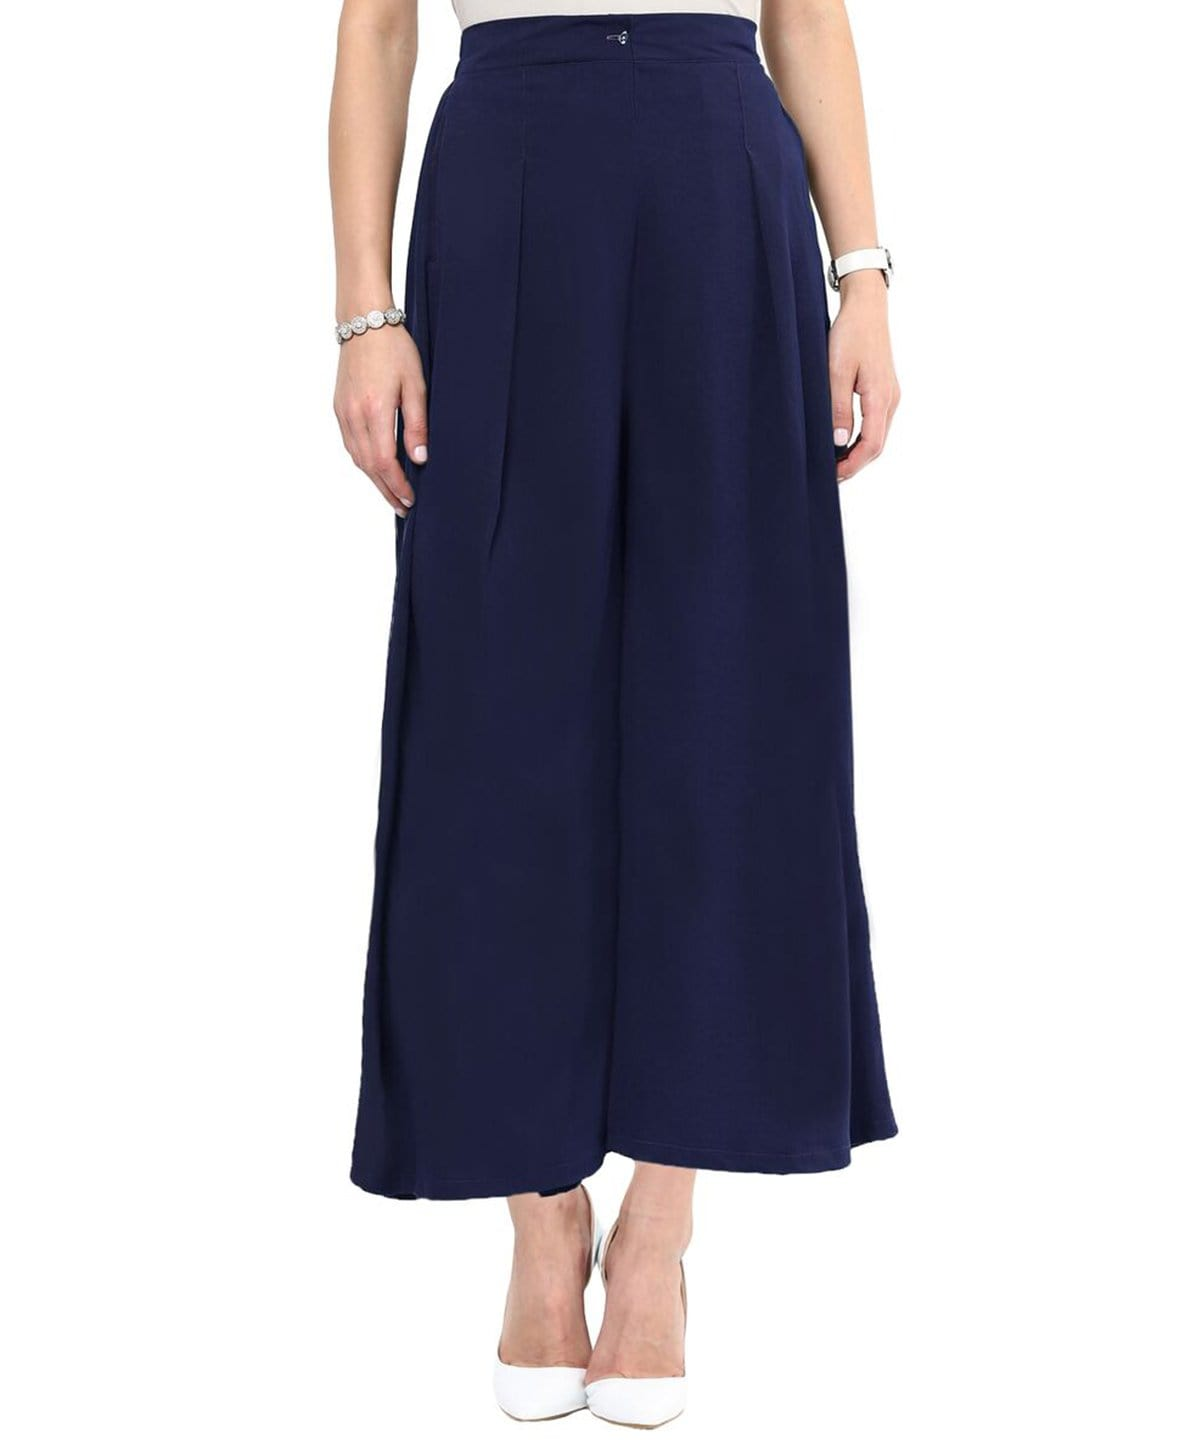 Uptownie Navy Blue Solid Adjustable Palazzo 1 summer sale